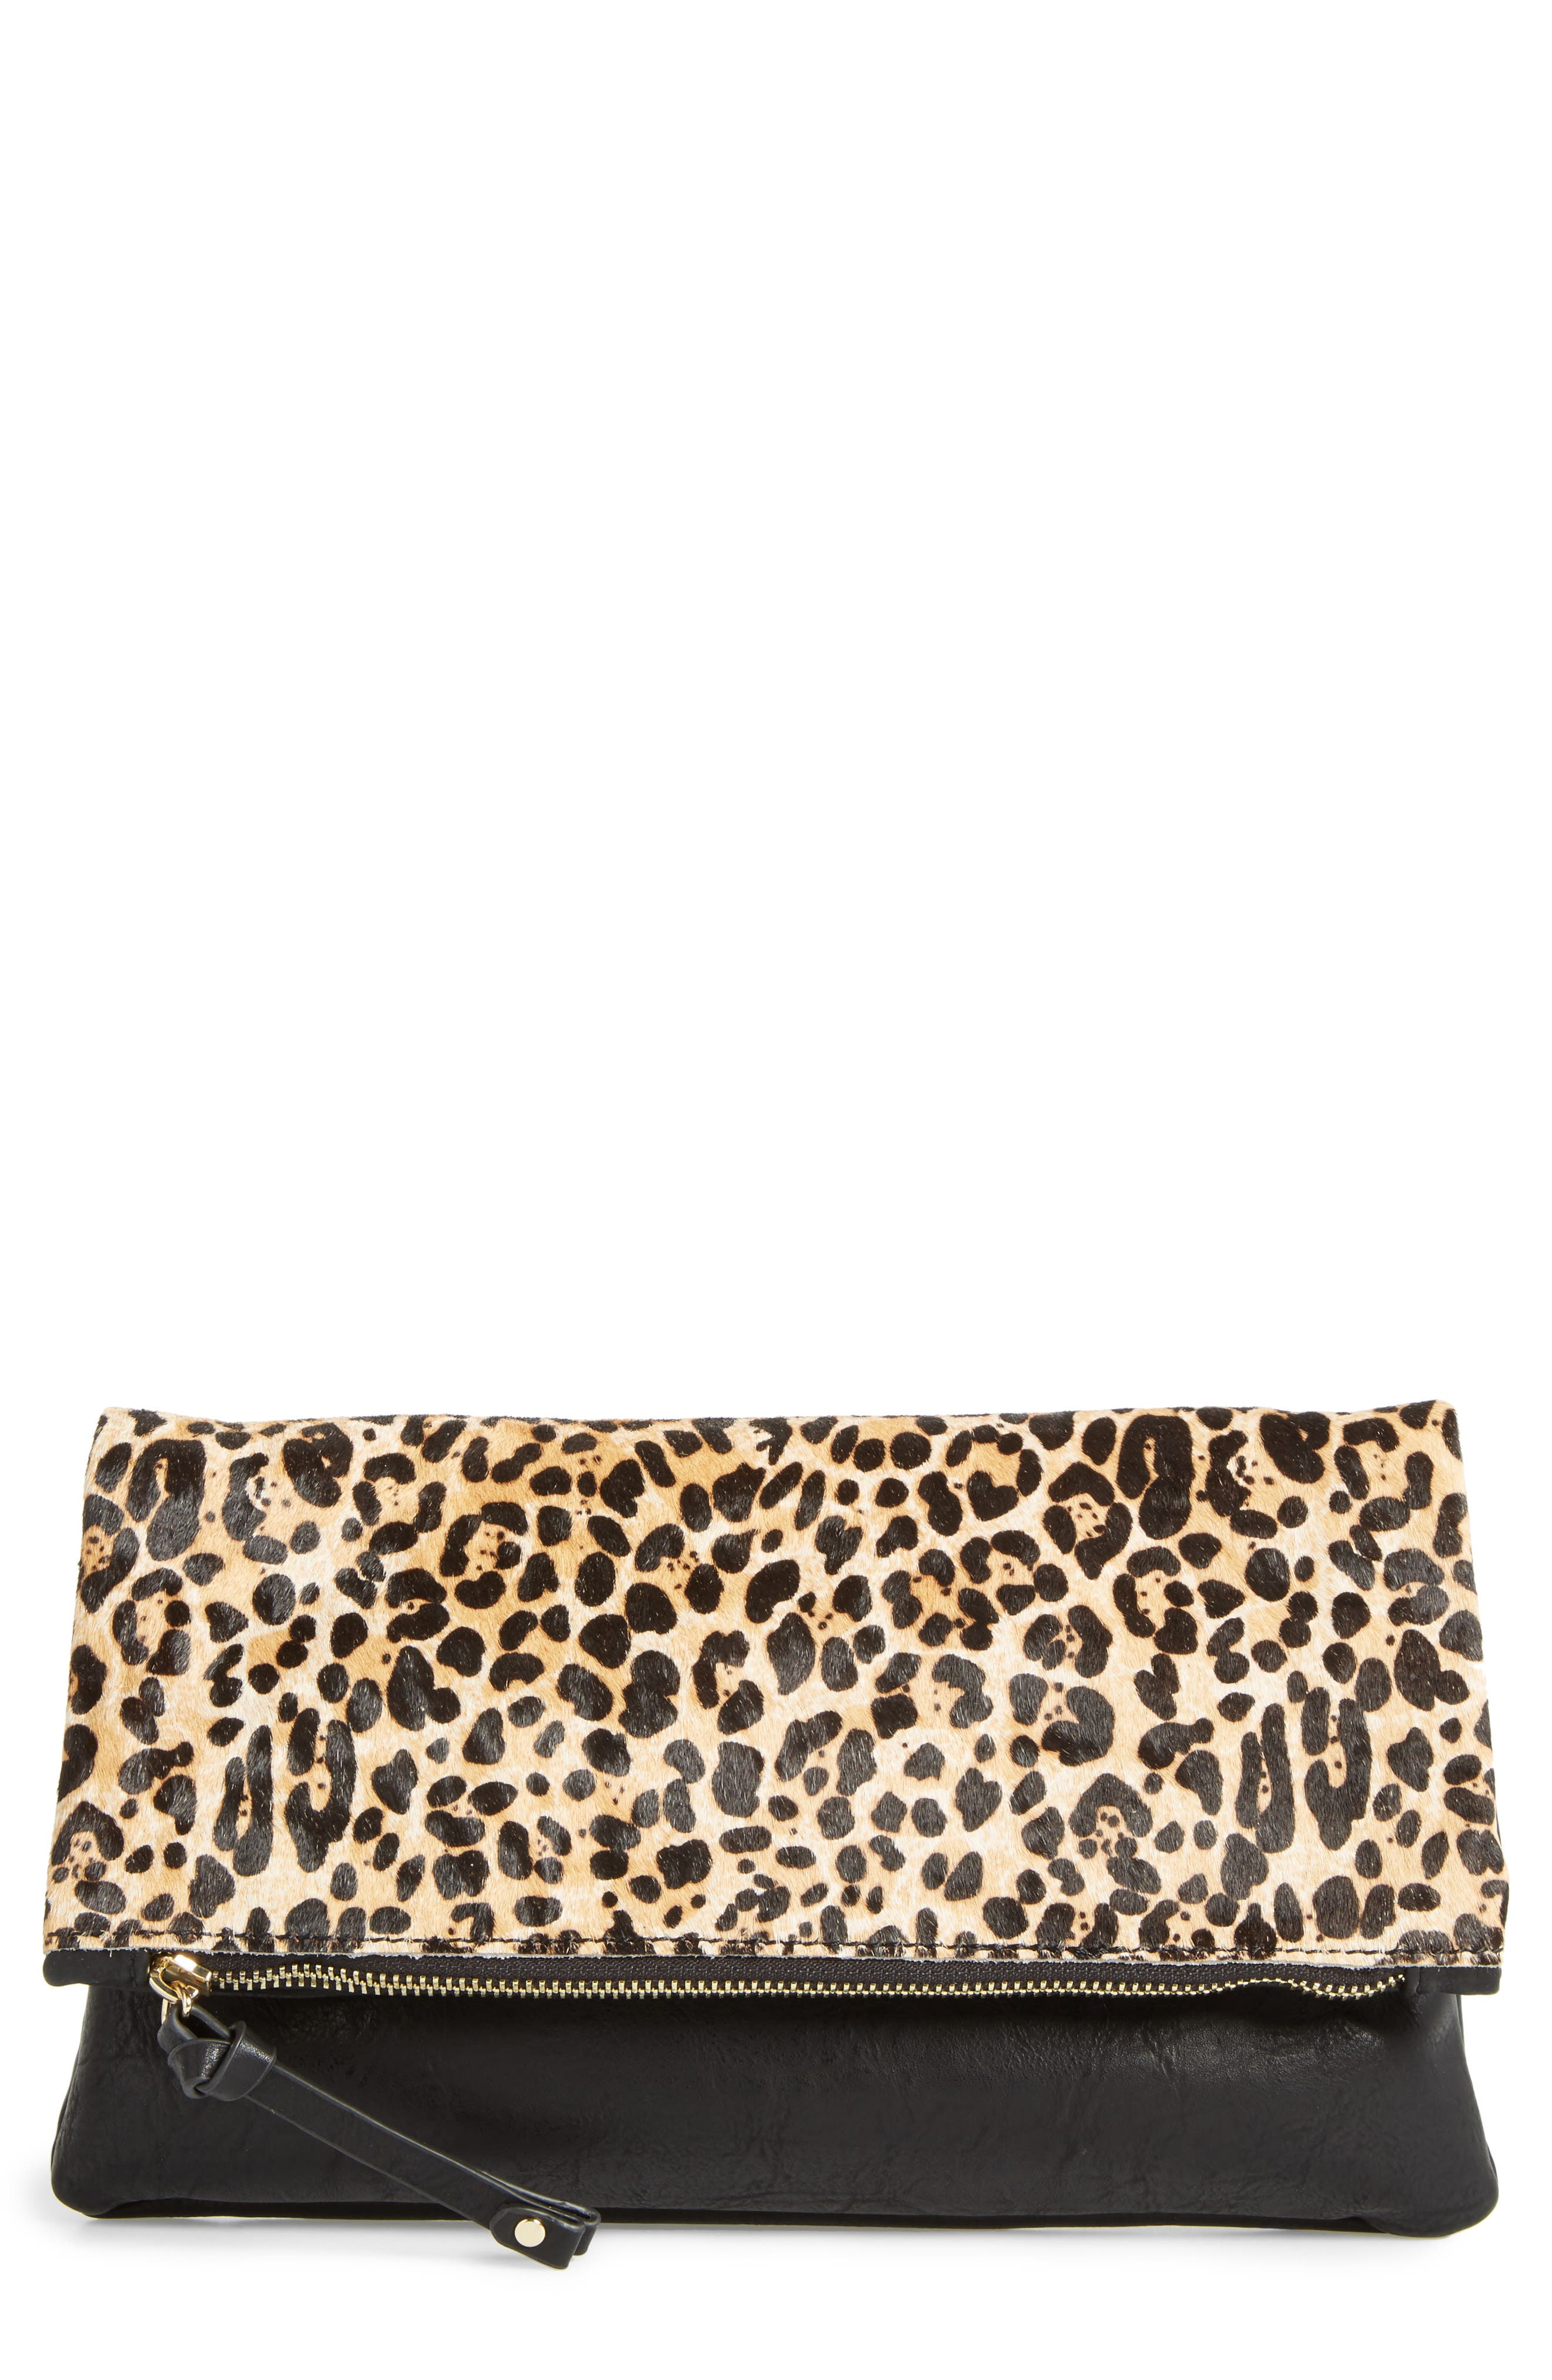 Marlena Faux Leather Foldover Clutch,                             Main thumbnail 1, color,                             200